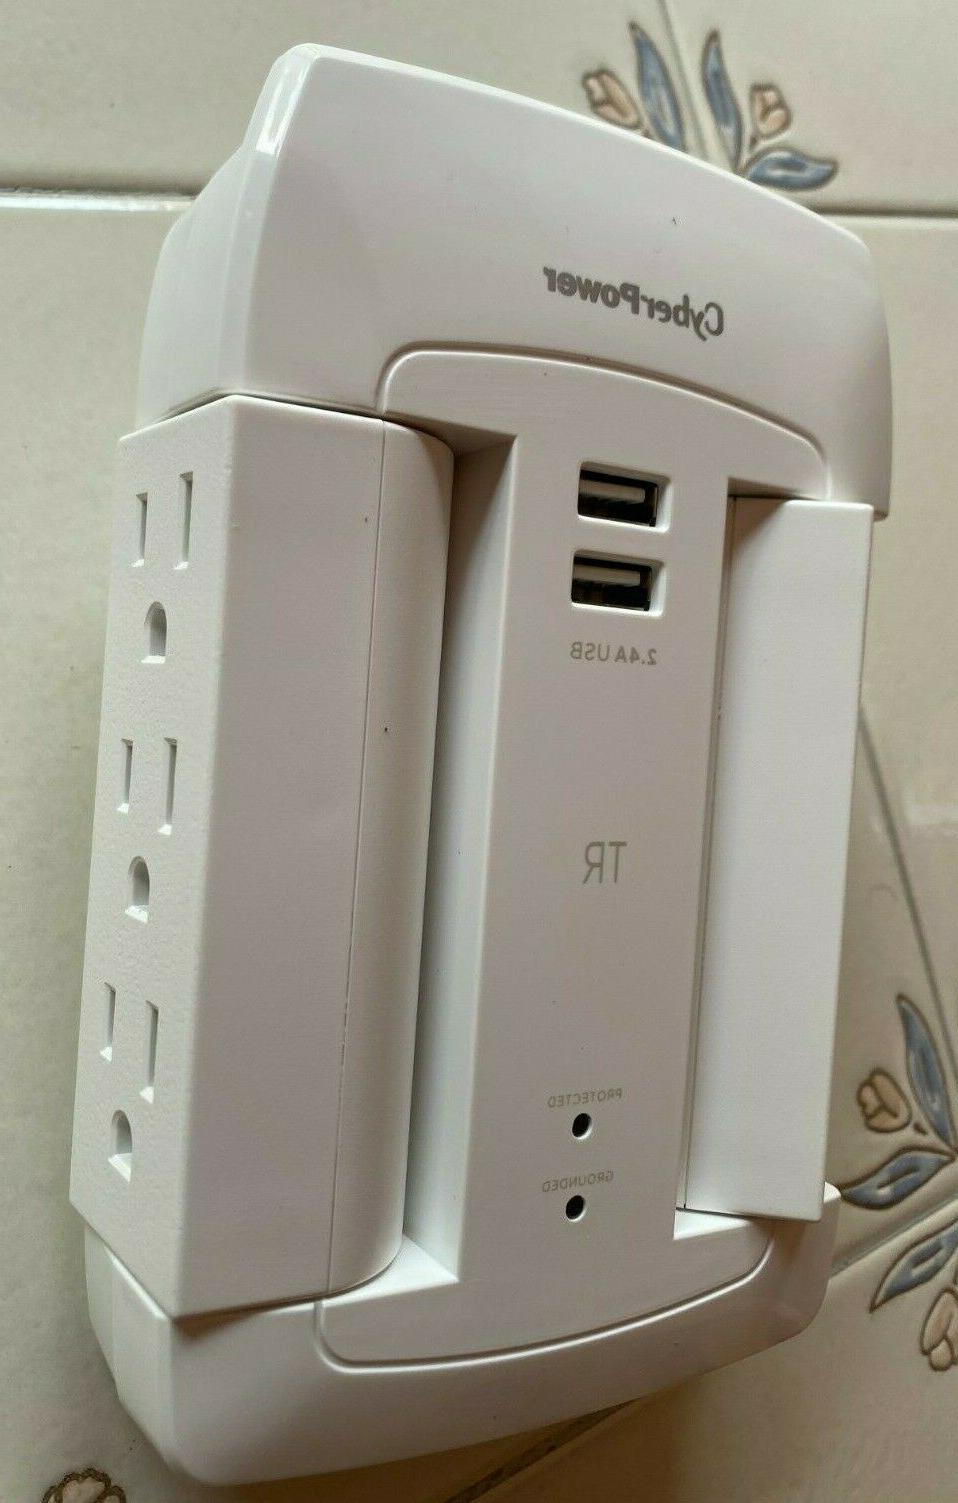 CyberPower 6 Outlet 1200J Power Protector USB Ports white